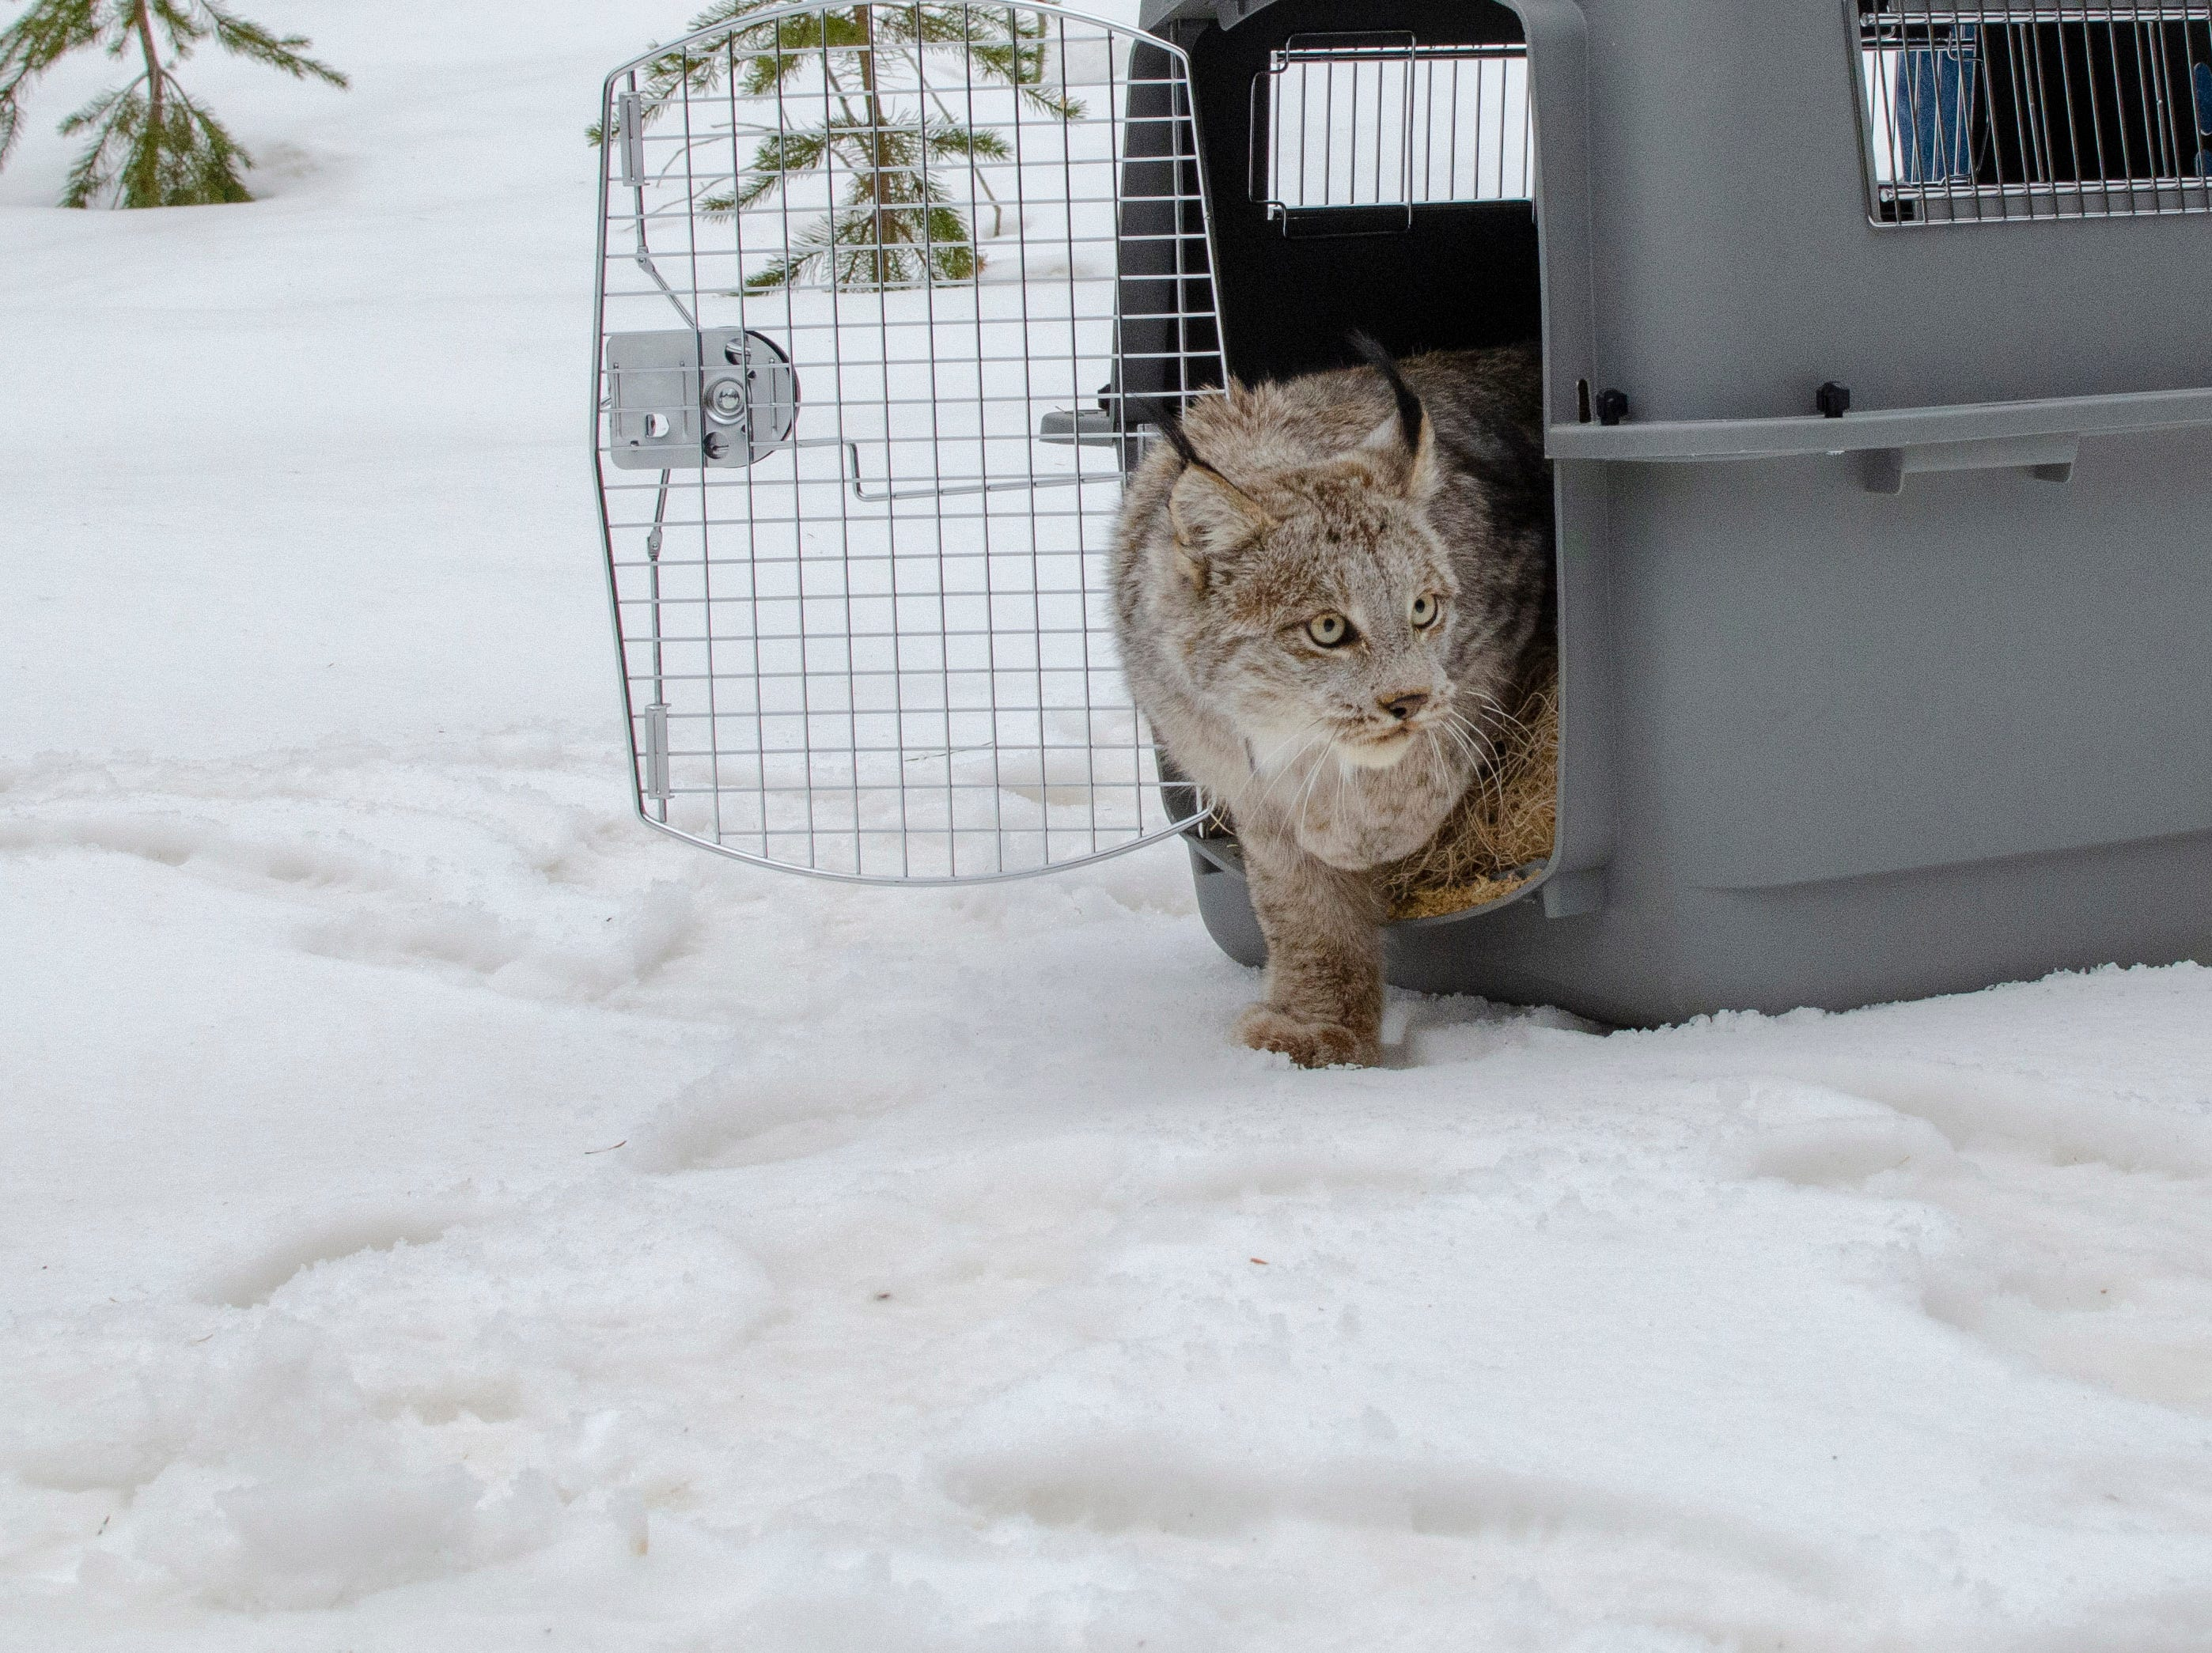 A Canada lynx takes her first step outside a wildlife carrier onto snow-covered ground in Schoolcraft County.